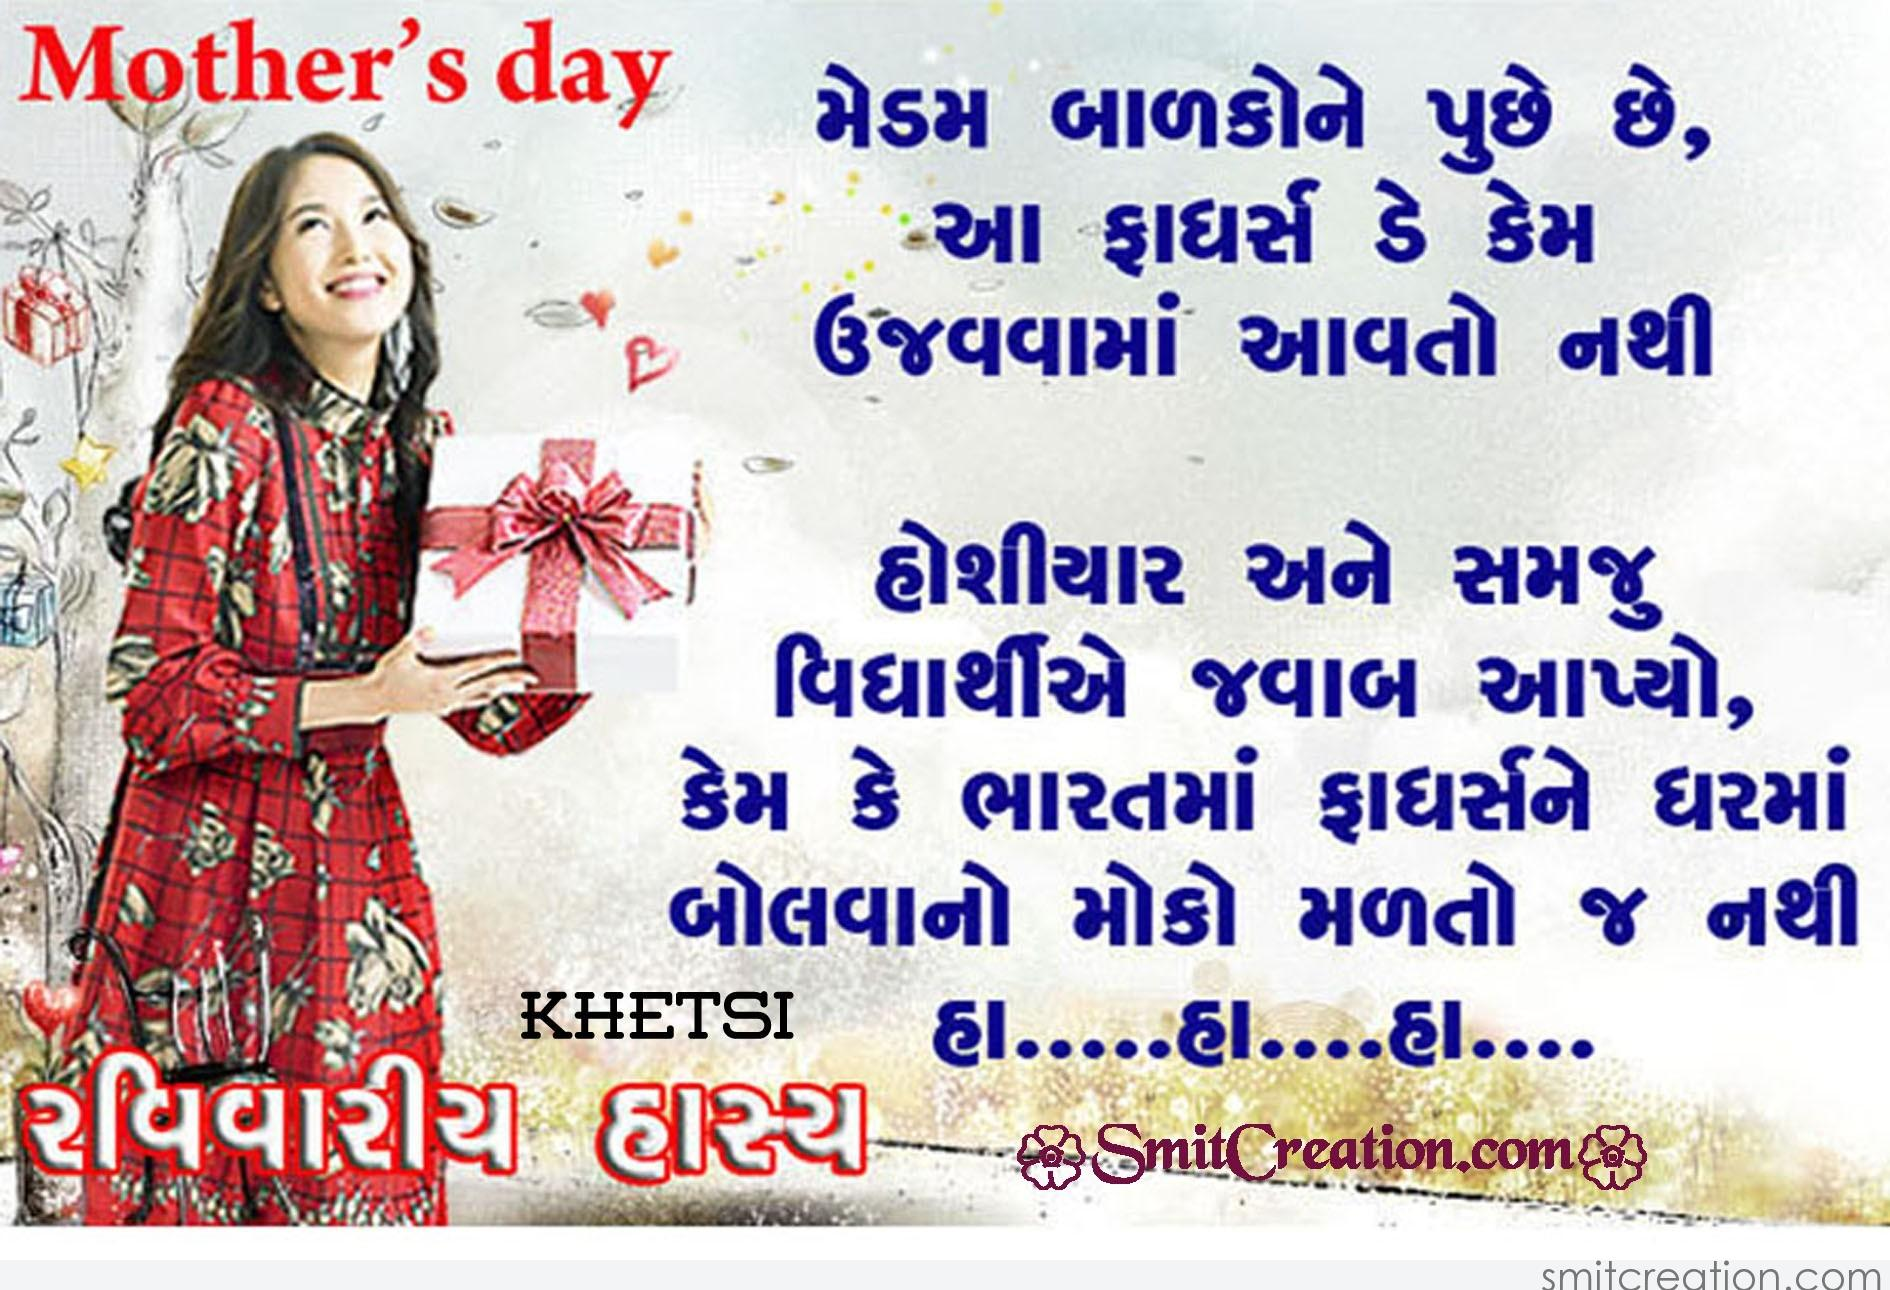 Good Afternoon Wallpaper With Quotes Gujarati Jokes Mother S Day Smitcreation Com